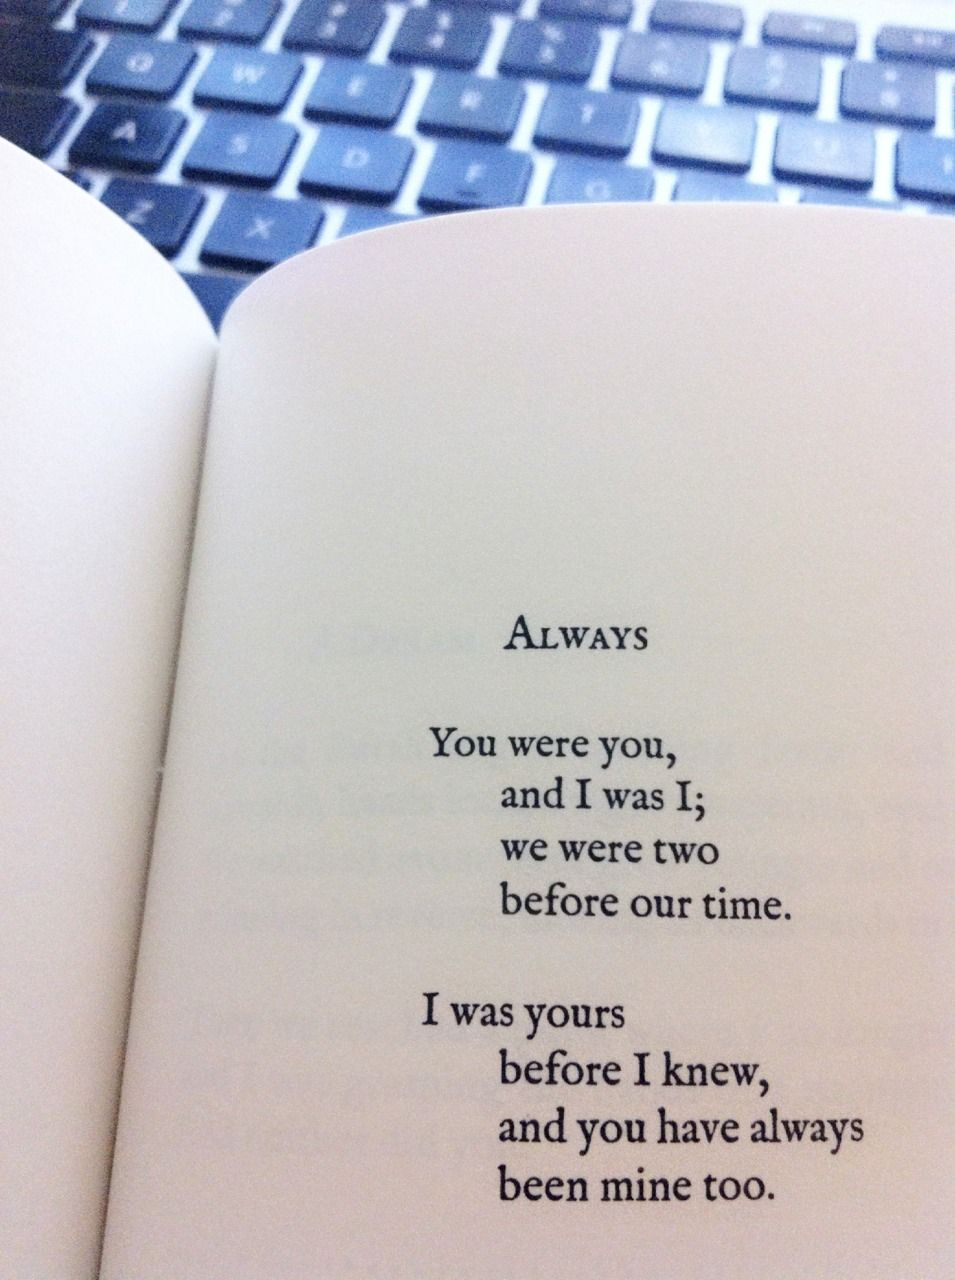 """I was yours before I knew and you have always been mine too"""" Lang Leav love poem"""